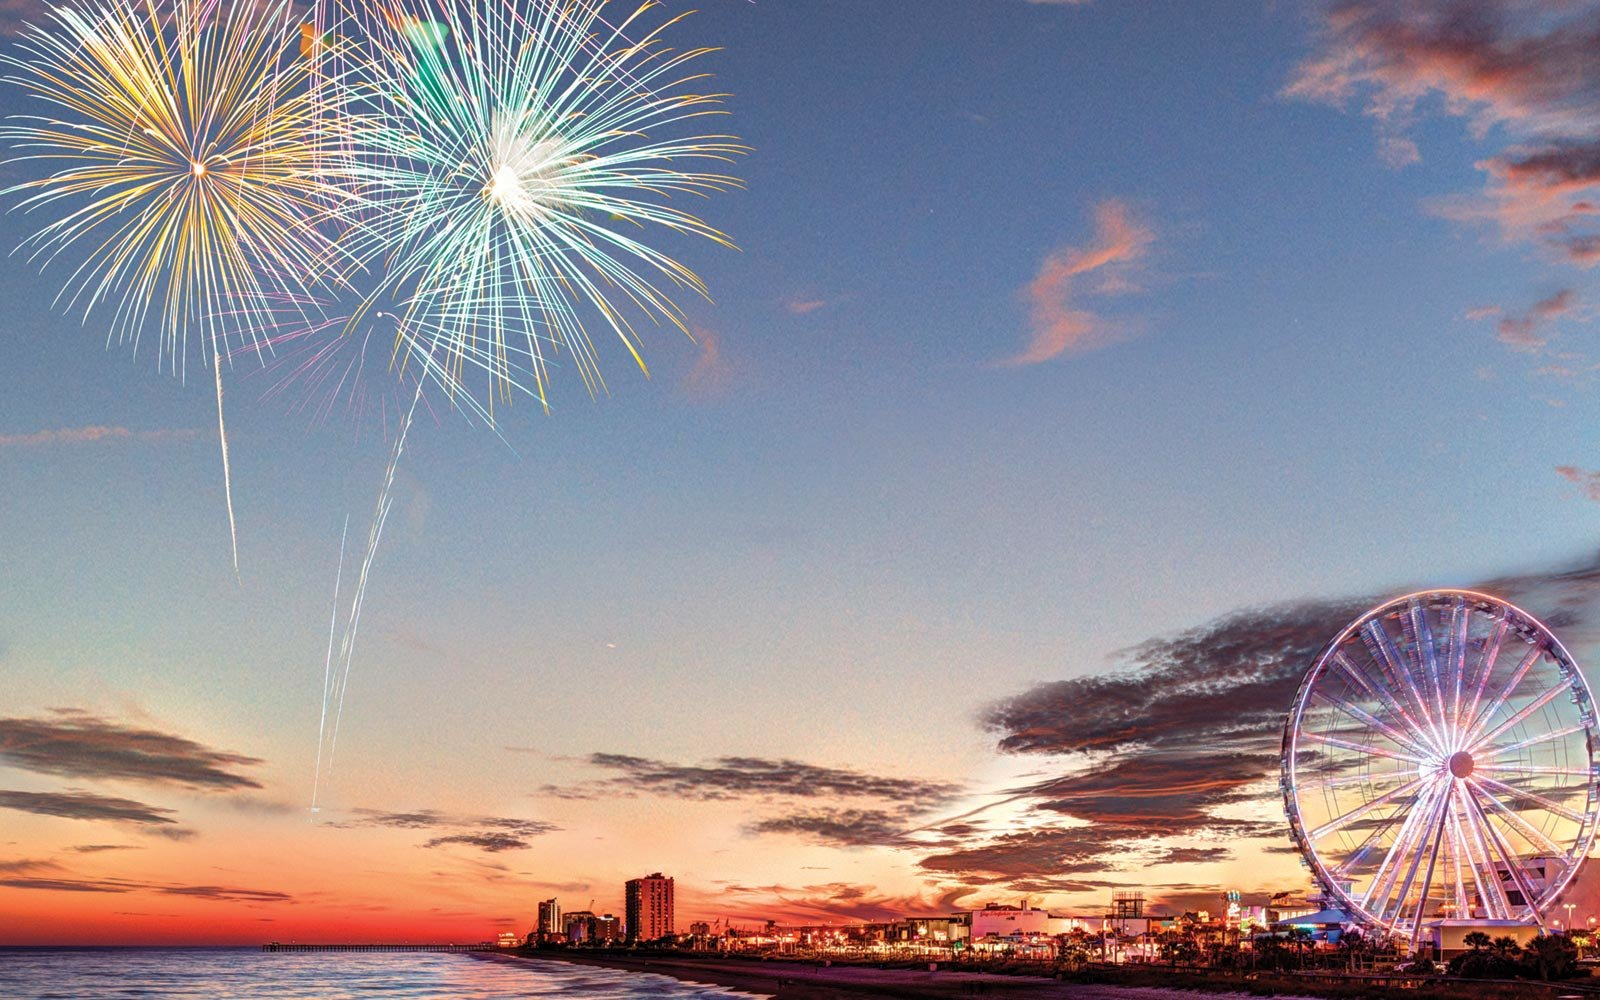 Fireworks, Myrtle Beach, South Carolina